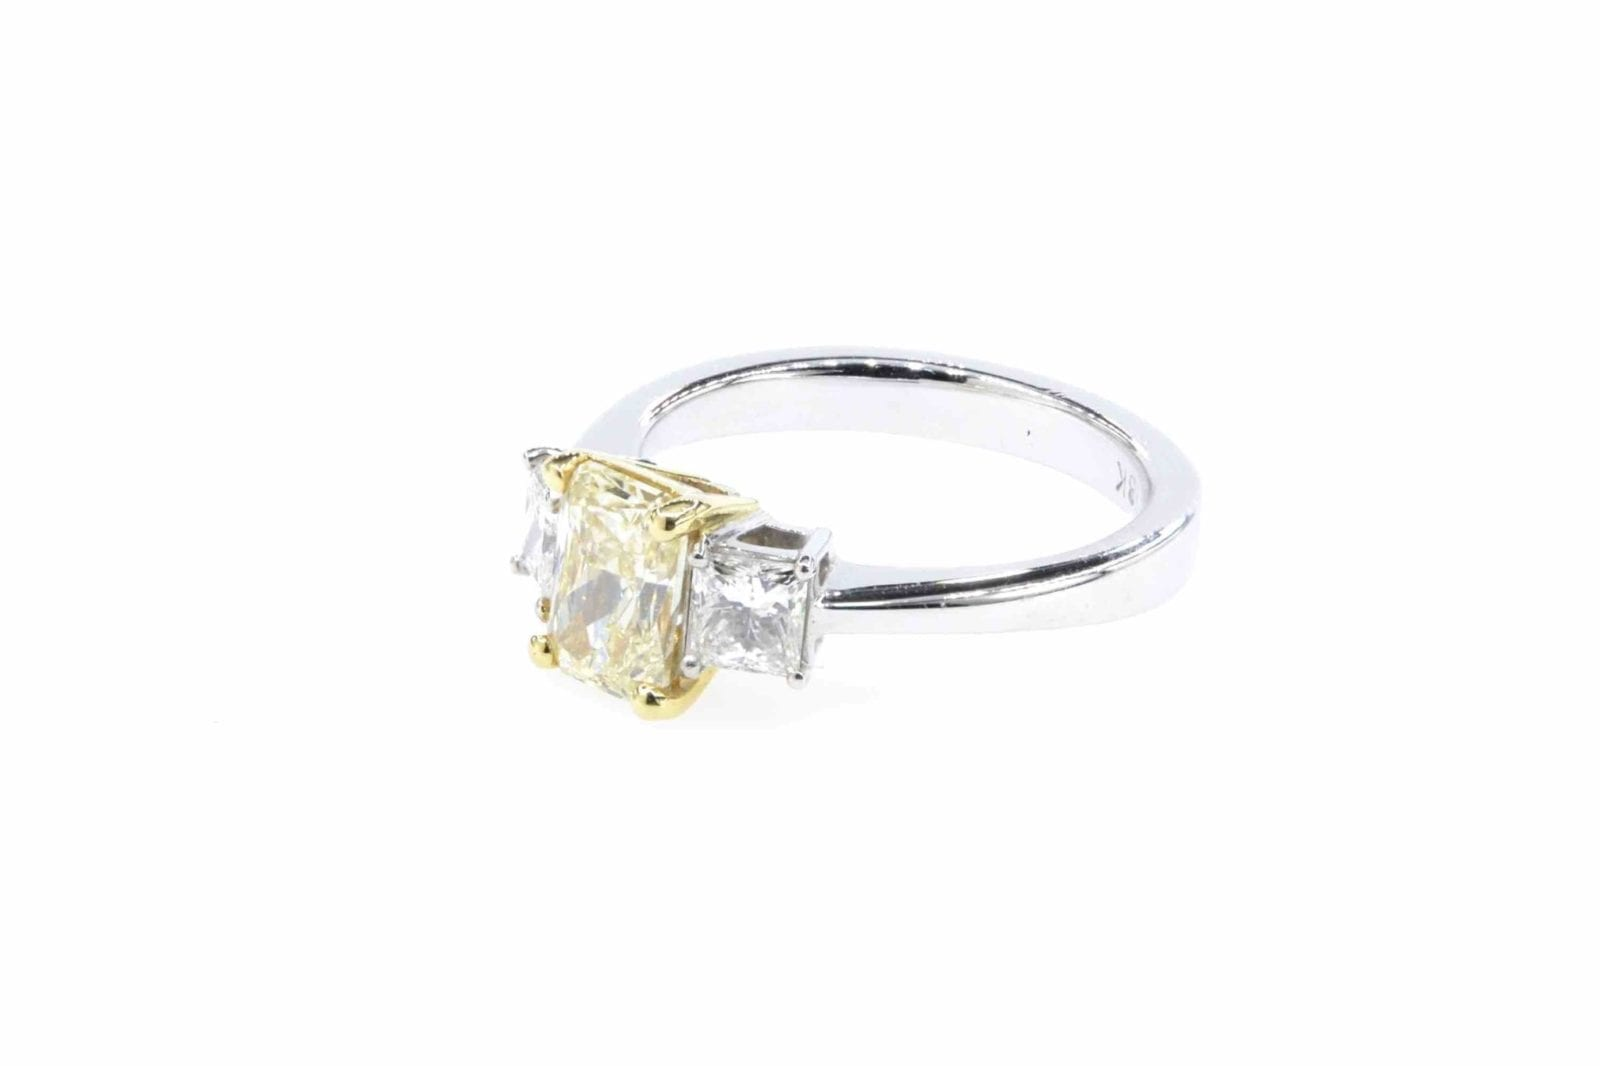 Bague saphir jaune diamants